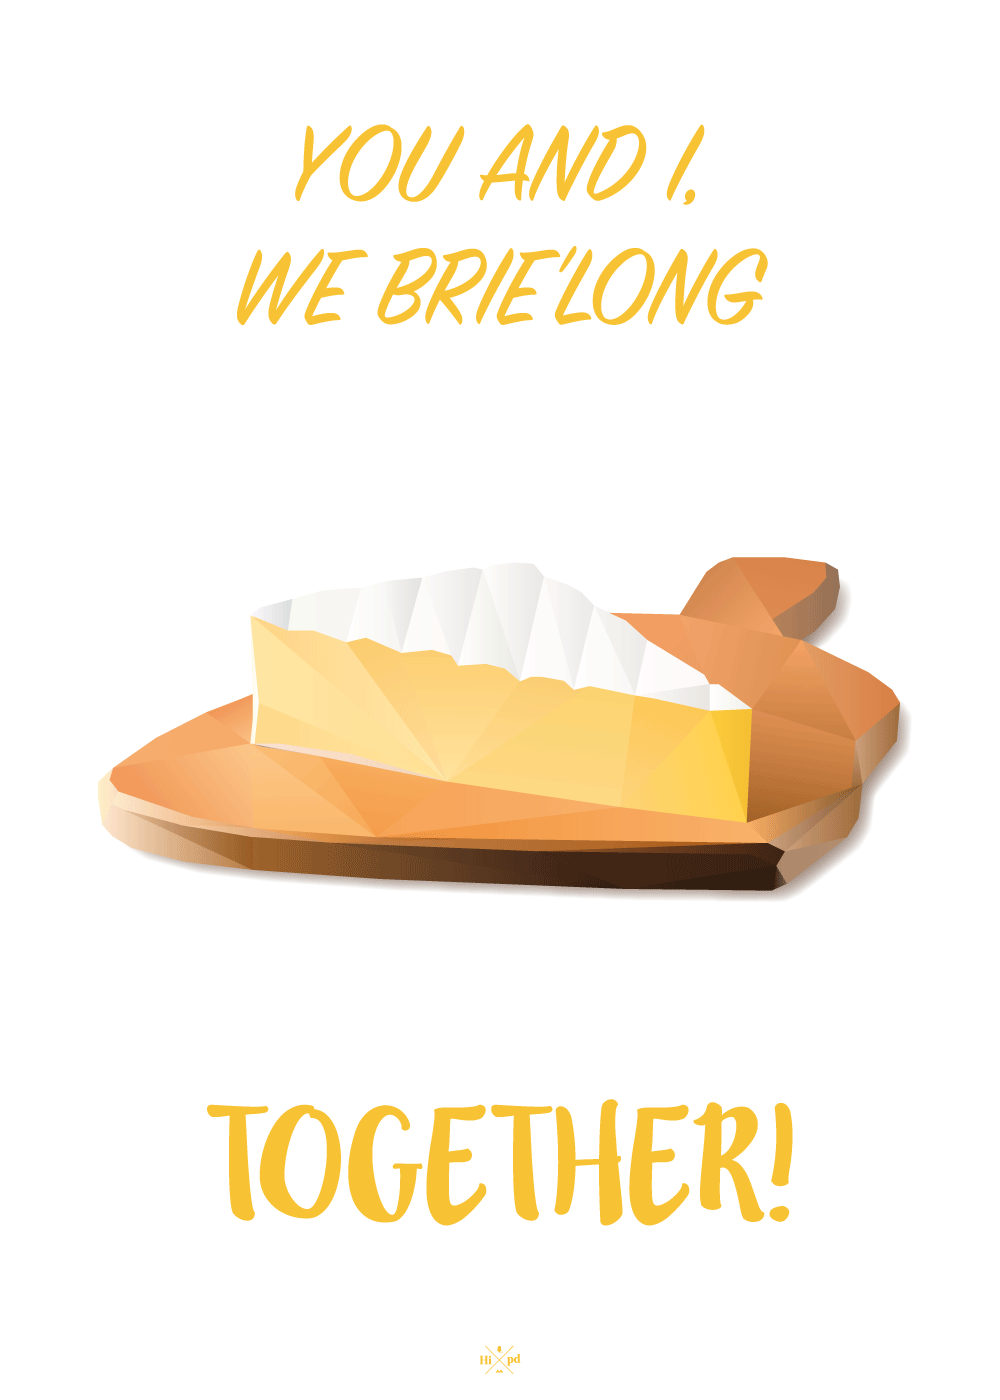 We brielong together